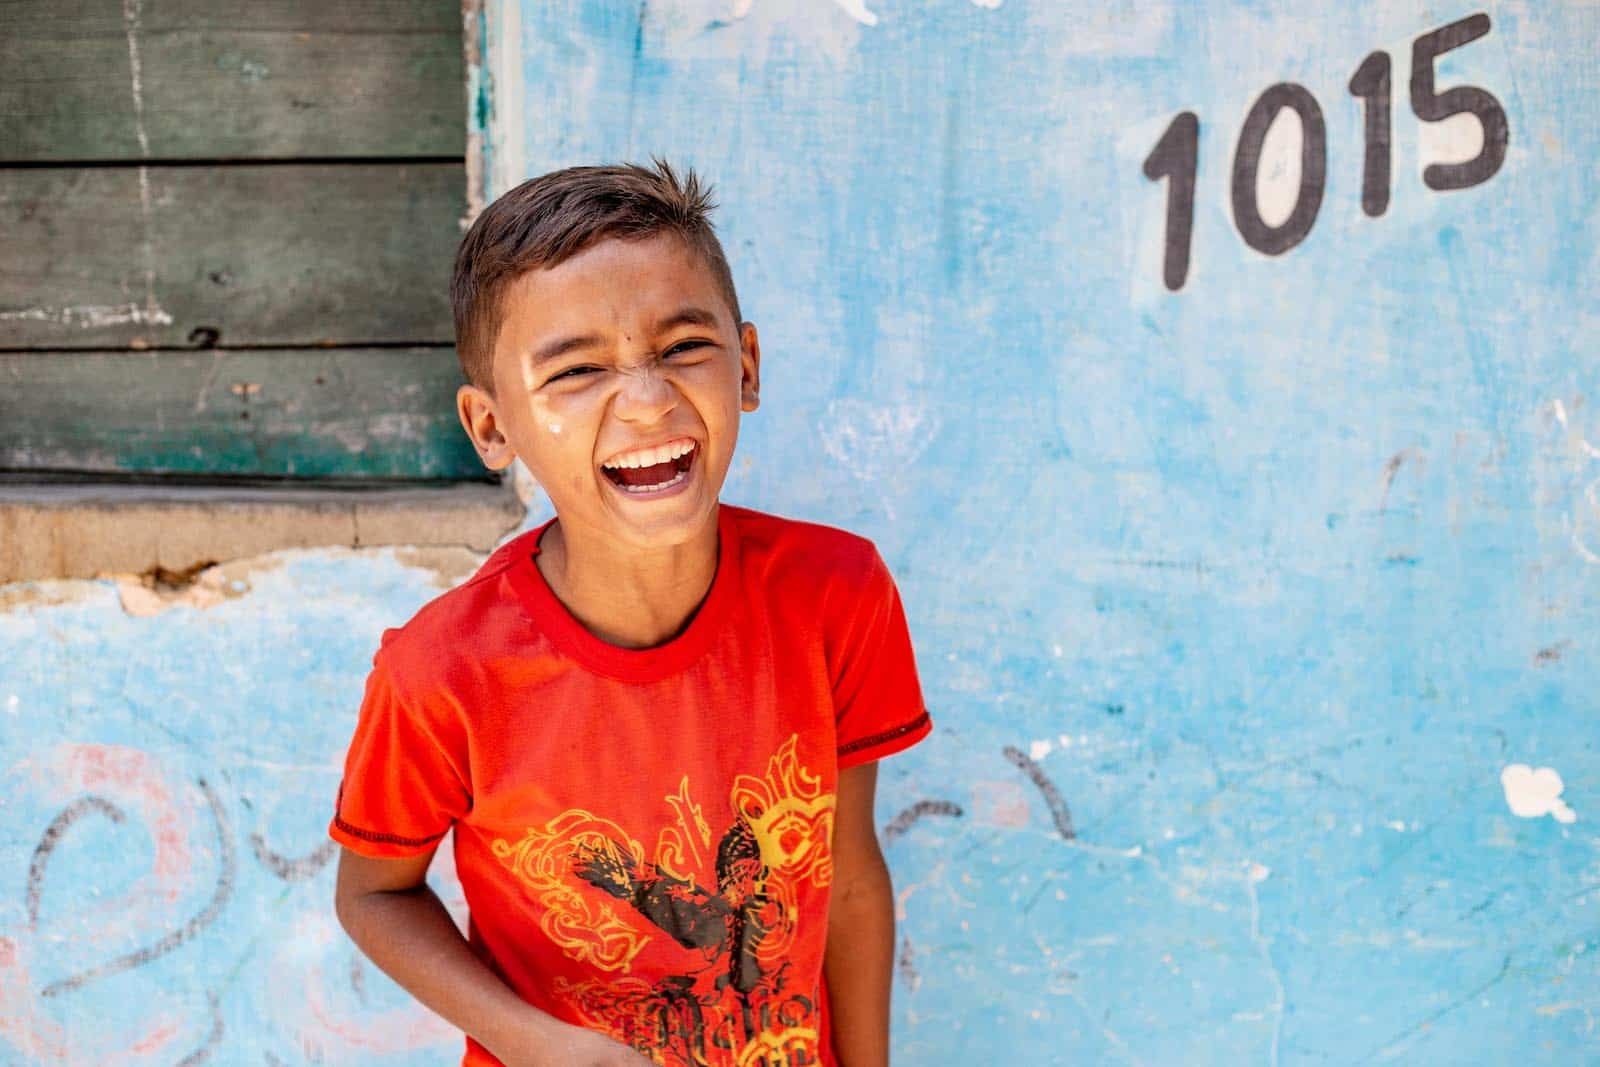 A boy in a red shirt laughs at the camera.